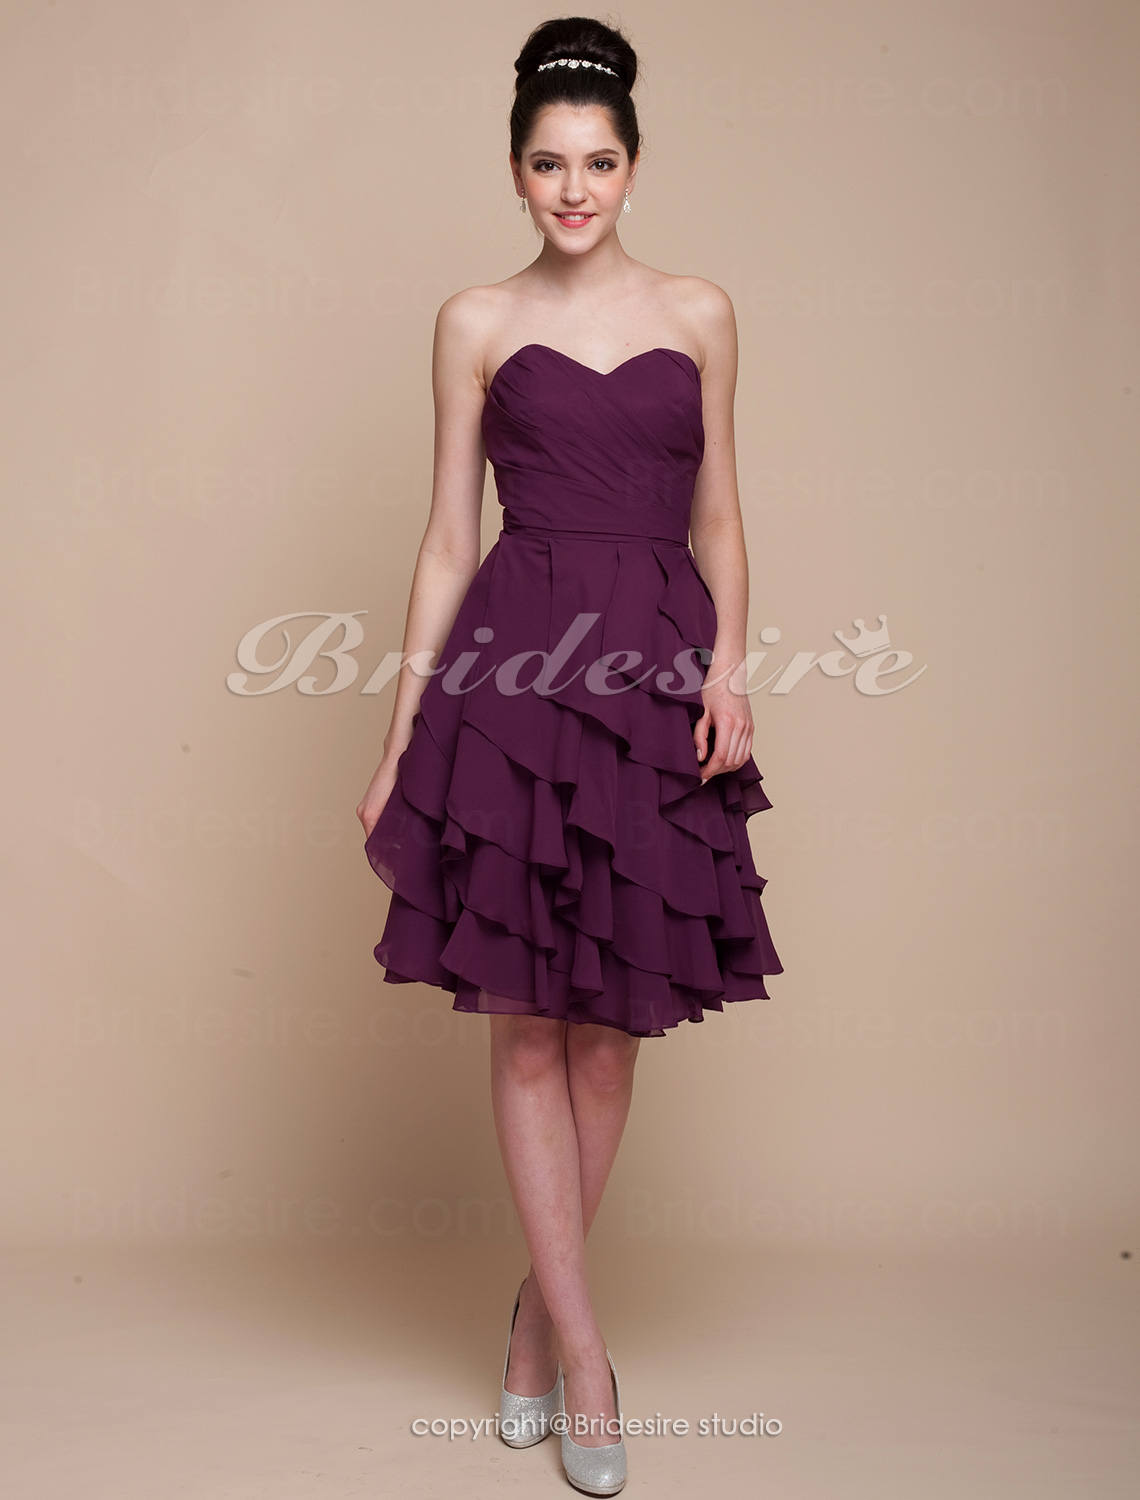 A-line Knee-length Tiered Chiffon Sweetheart Bridesmaid Dress